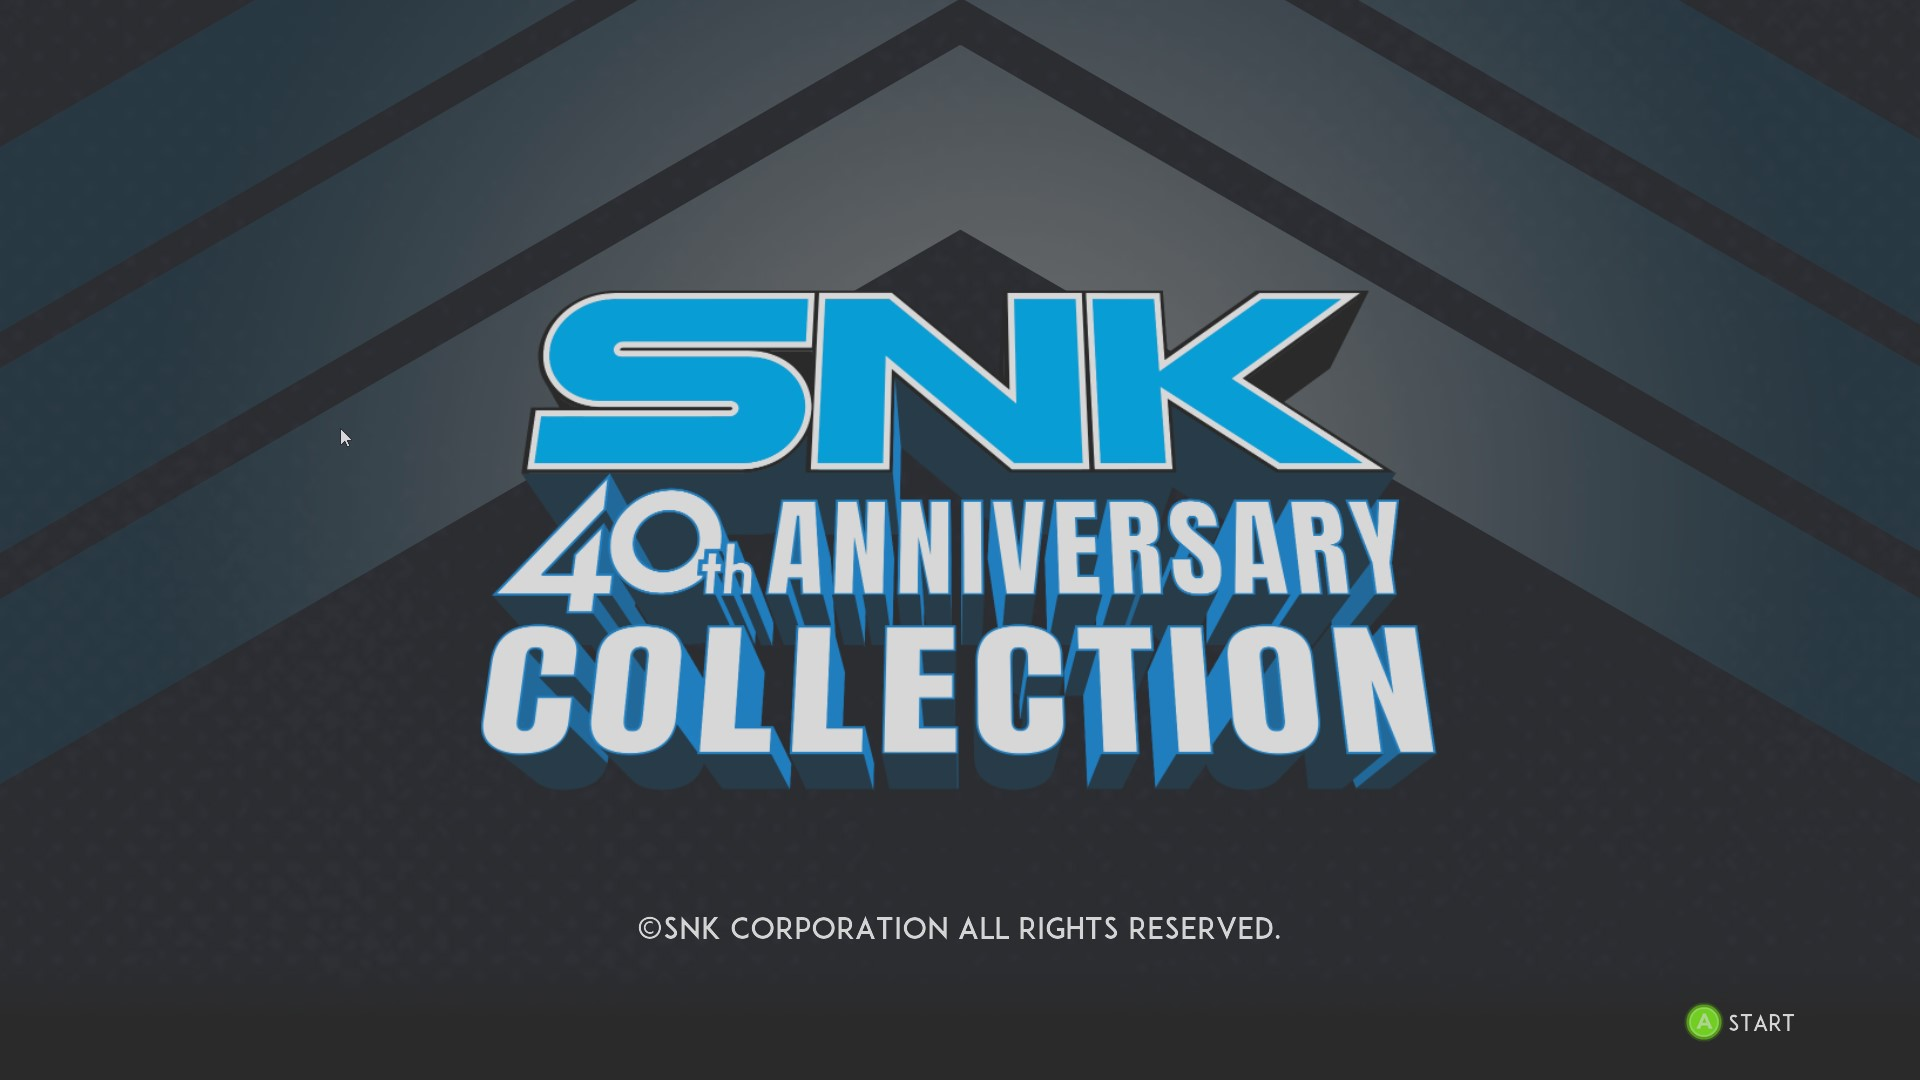 SNK 40th Anniversary Collection: Time Soldiers 3,000 points